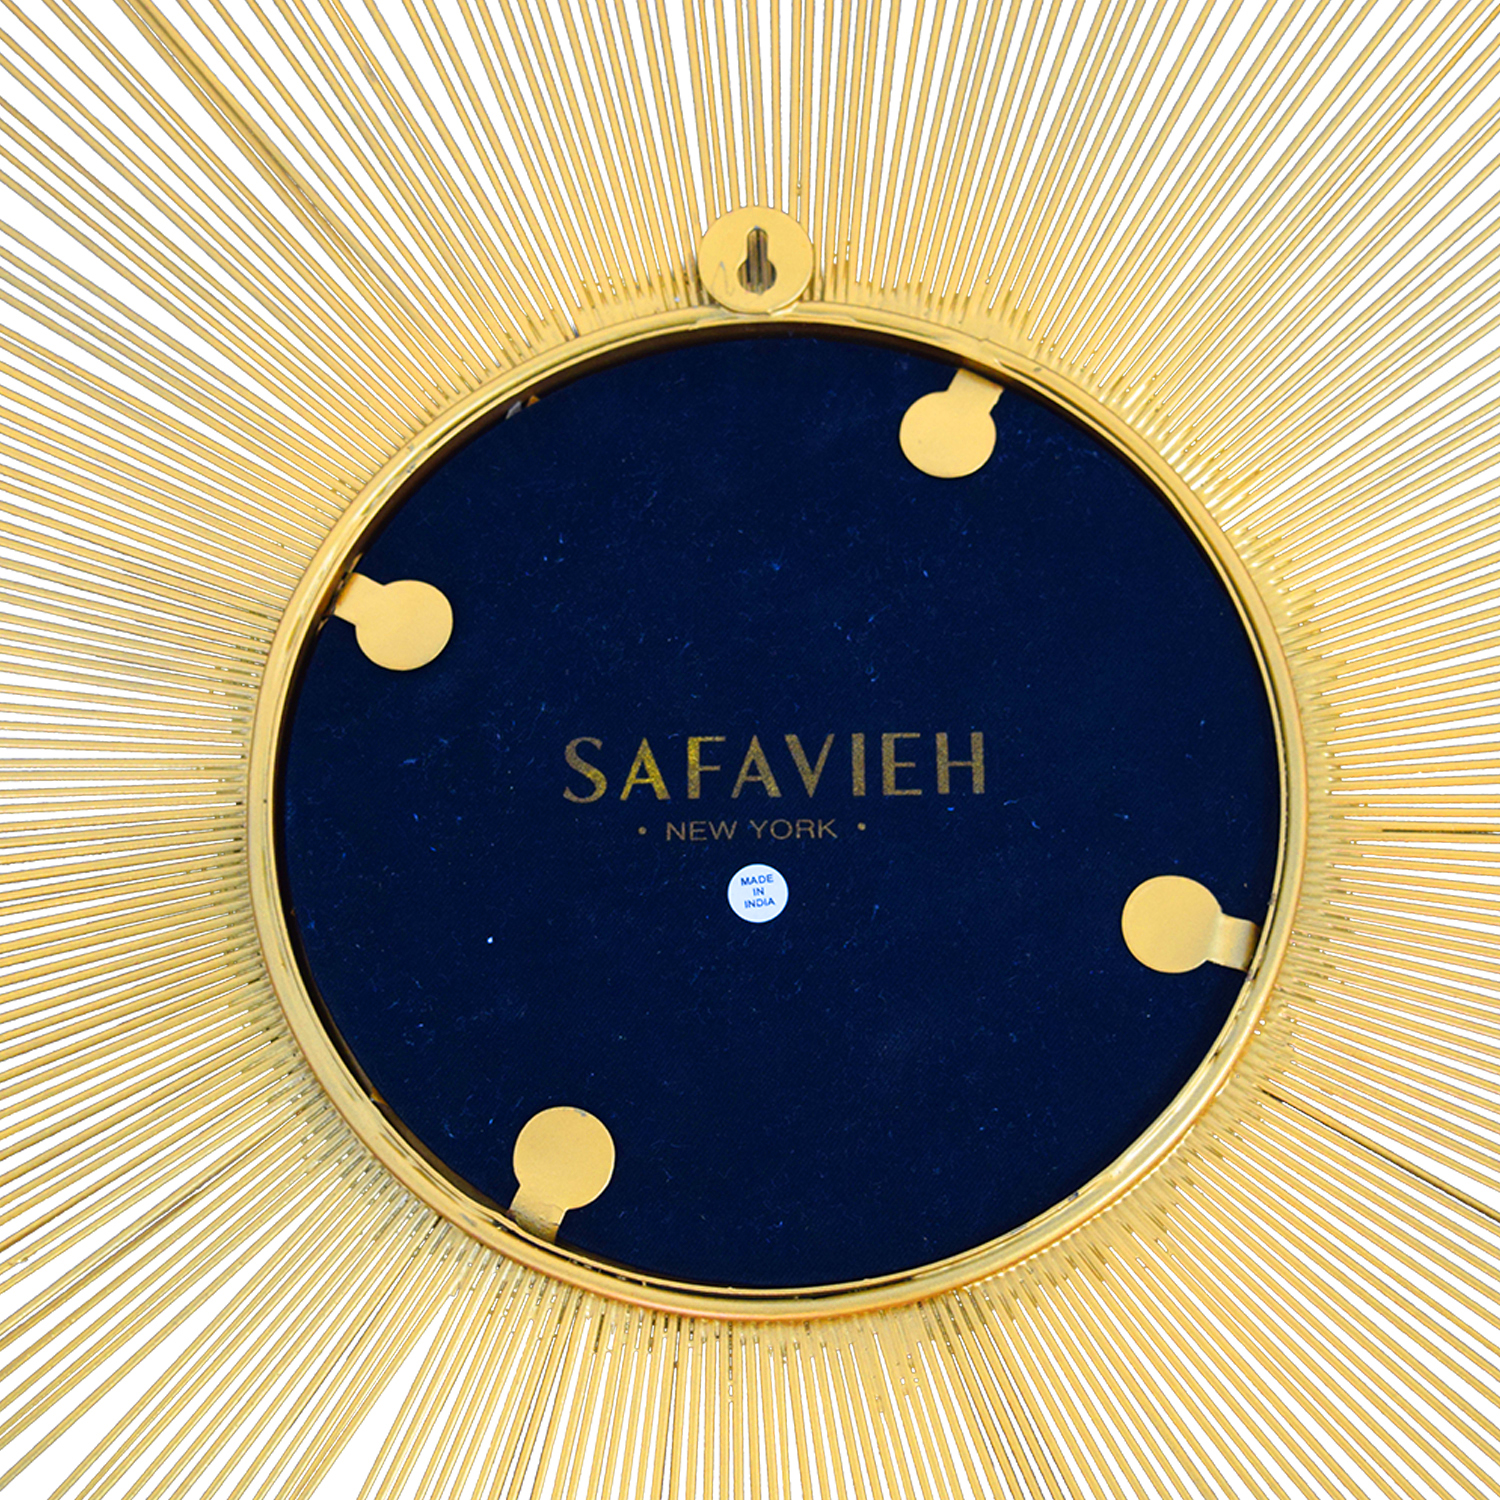 Safavieh Safavieh Gold Sunburst Mirror coupon